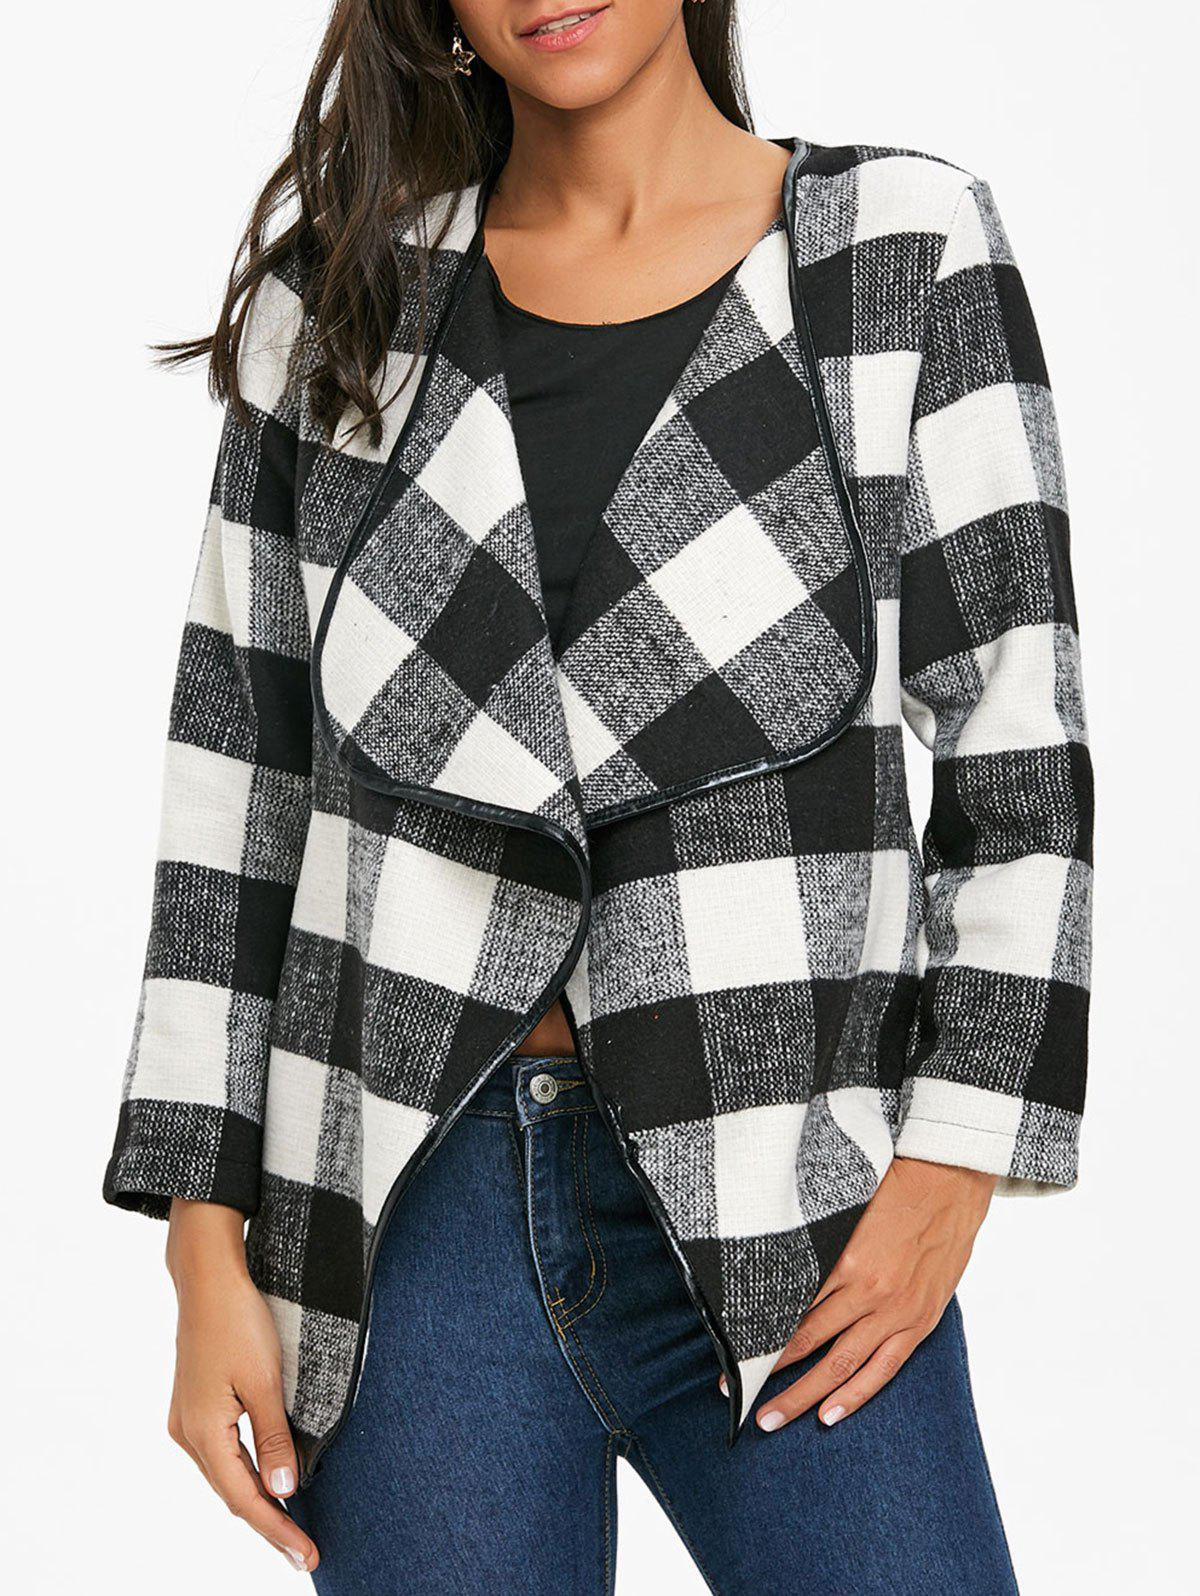 Asymmetrical Open Front Plaid Coat - WHITE/BLACK M